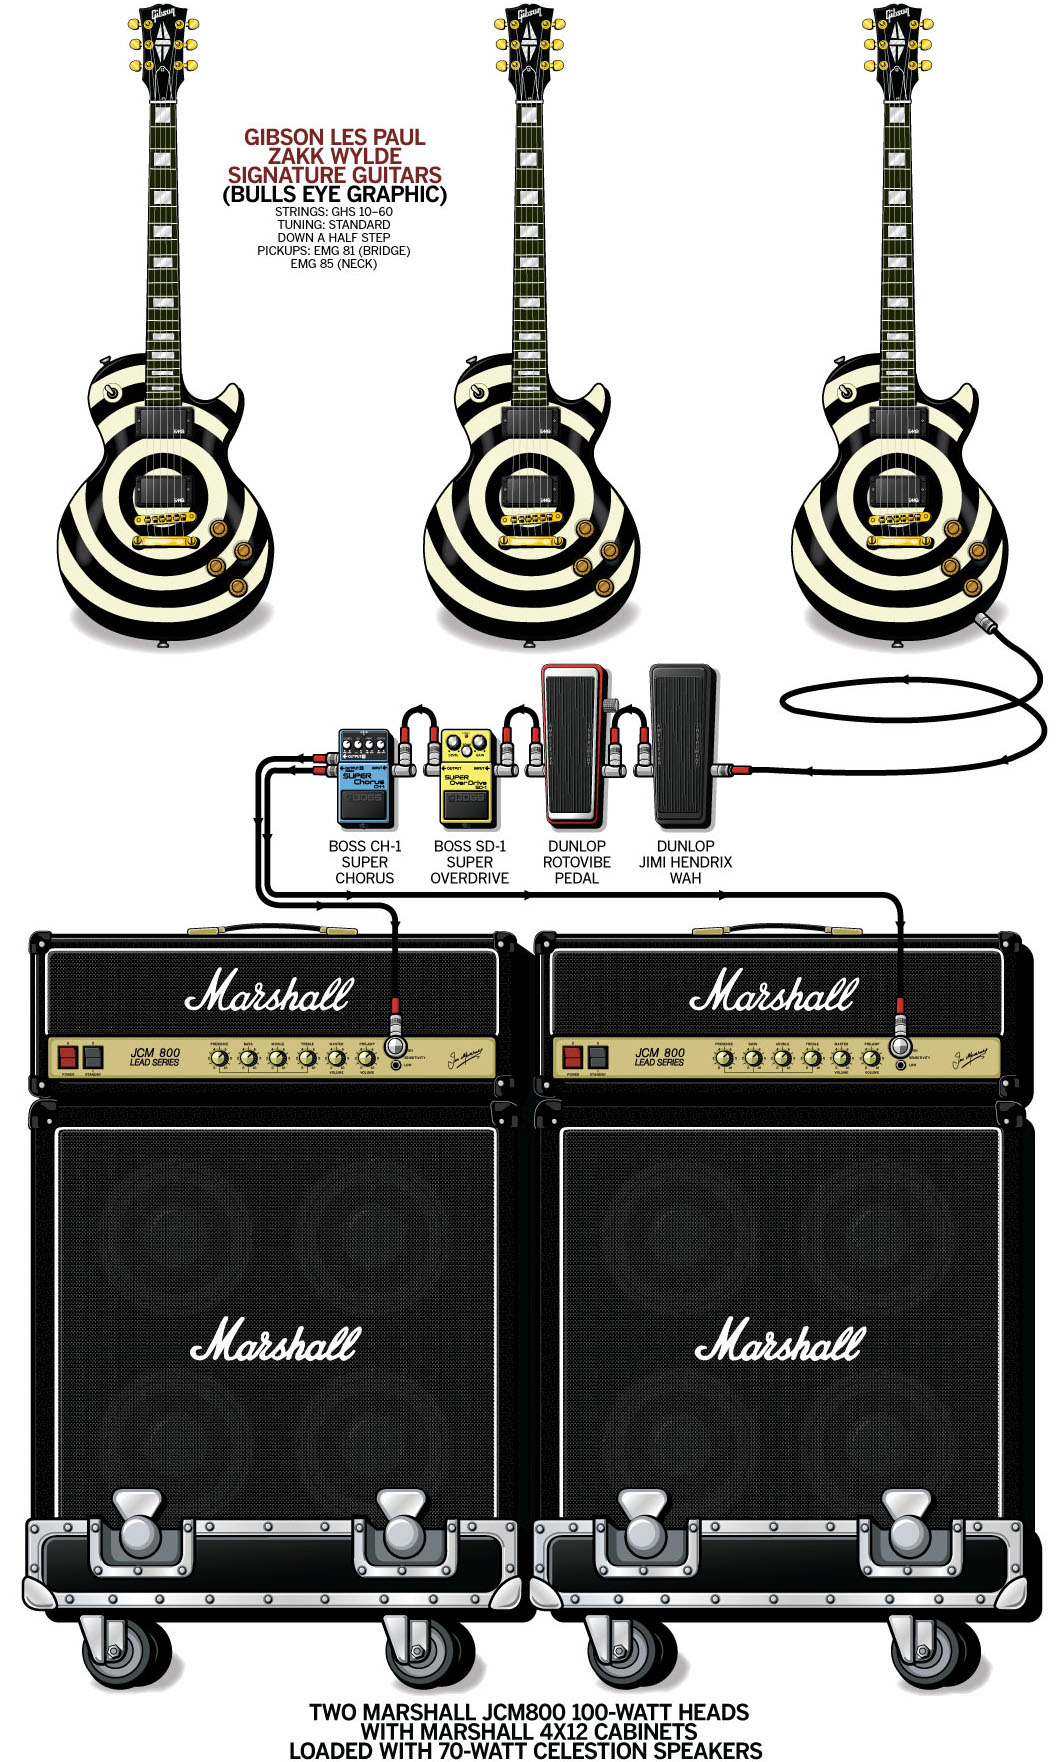 Zakk Wylde Amp Settings (2)